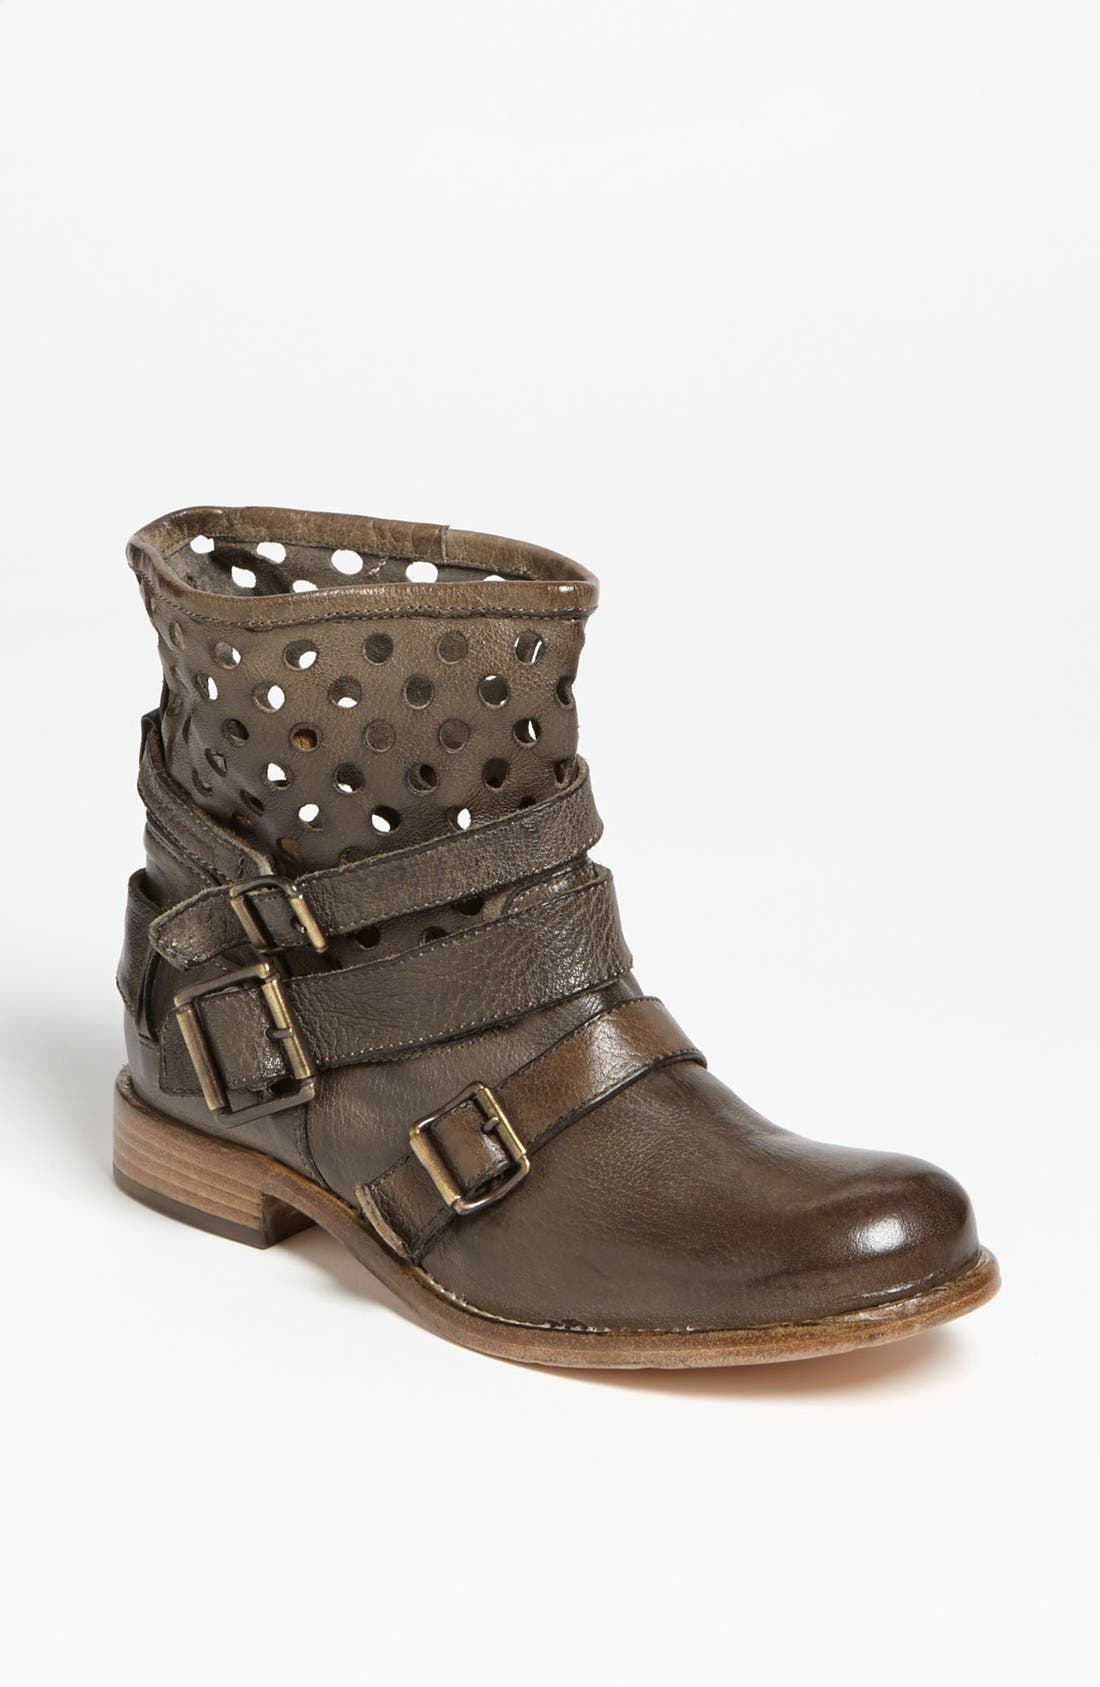 Alternate Image 1 Selected - Giove Perforated Ankle Boot